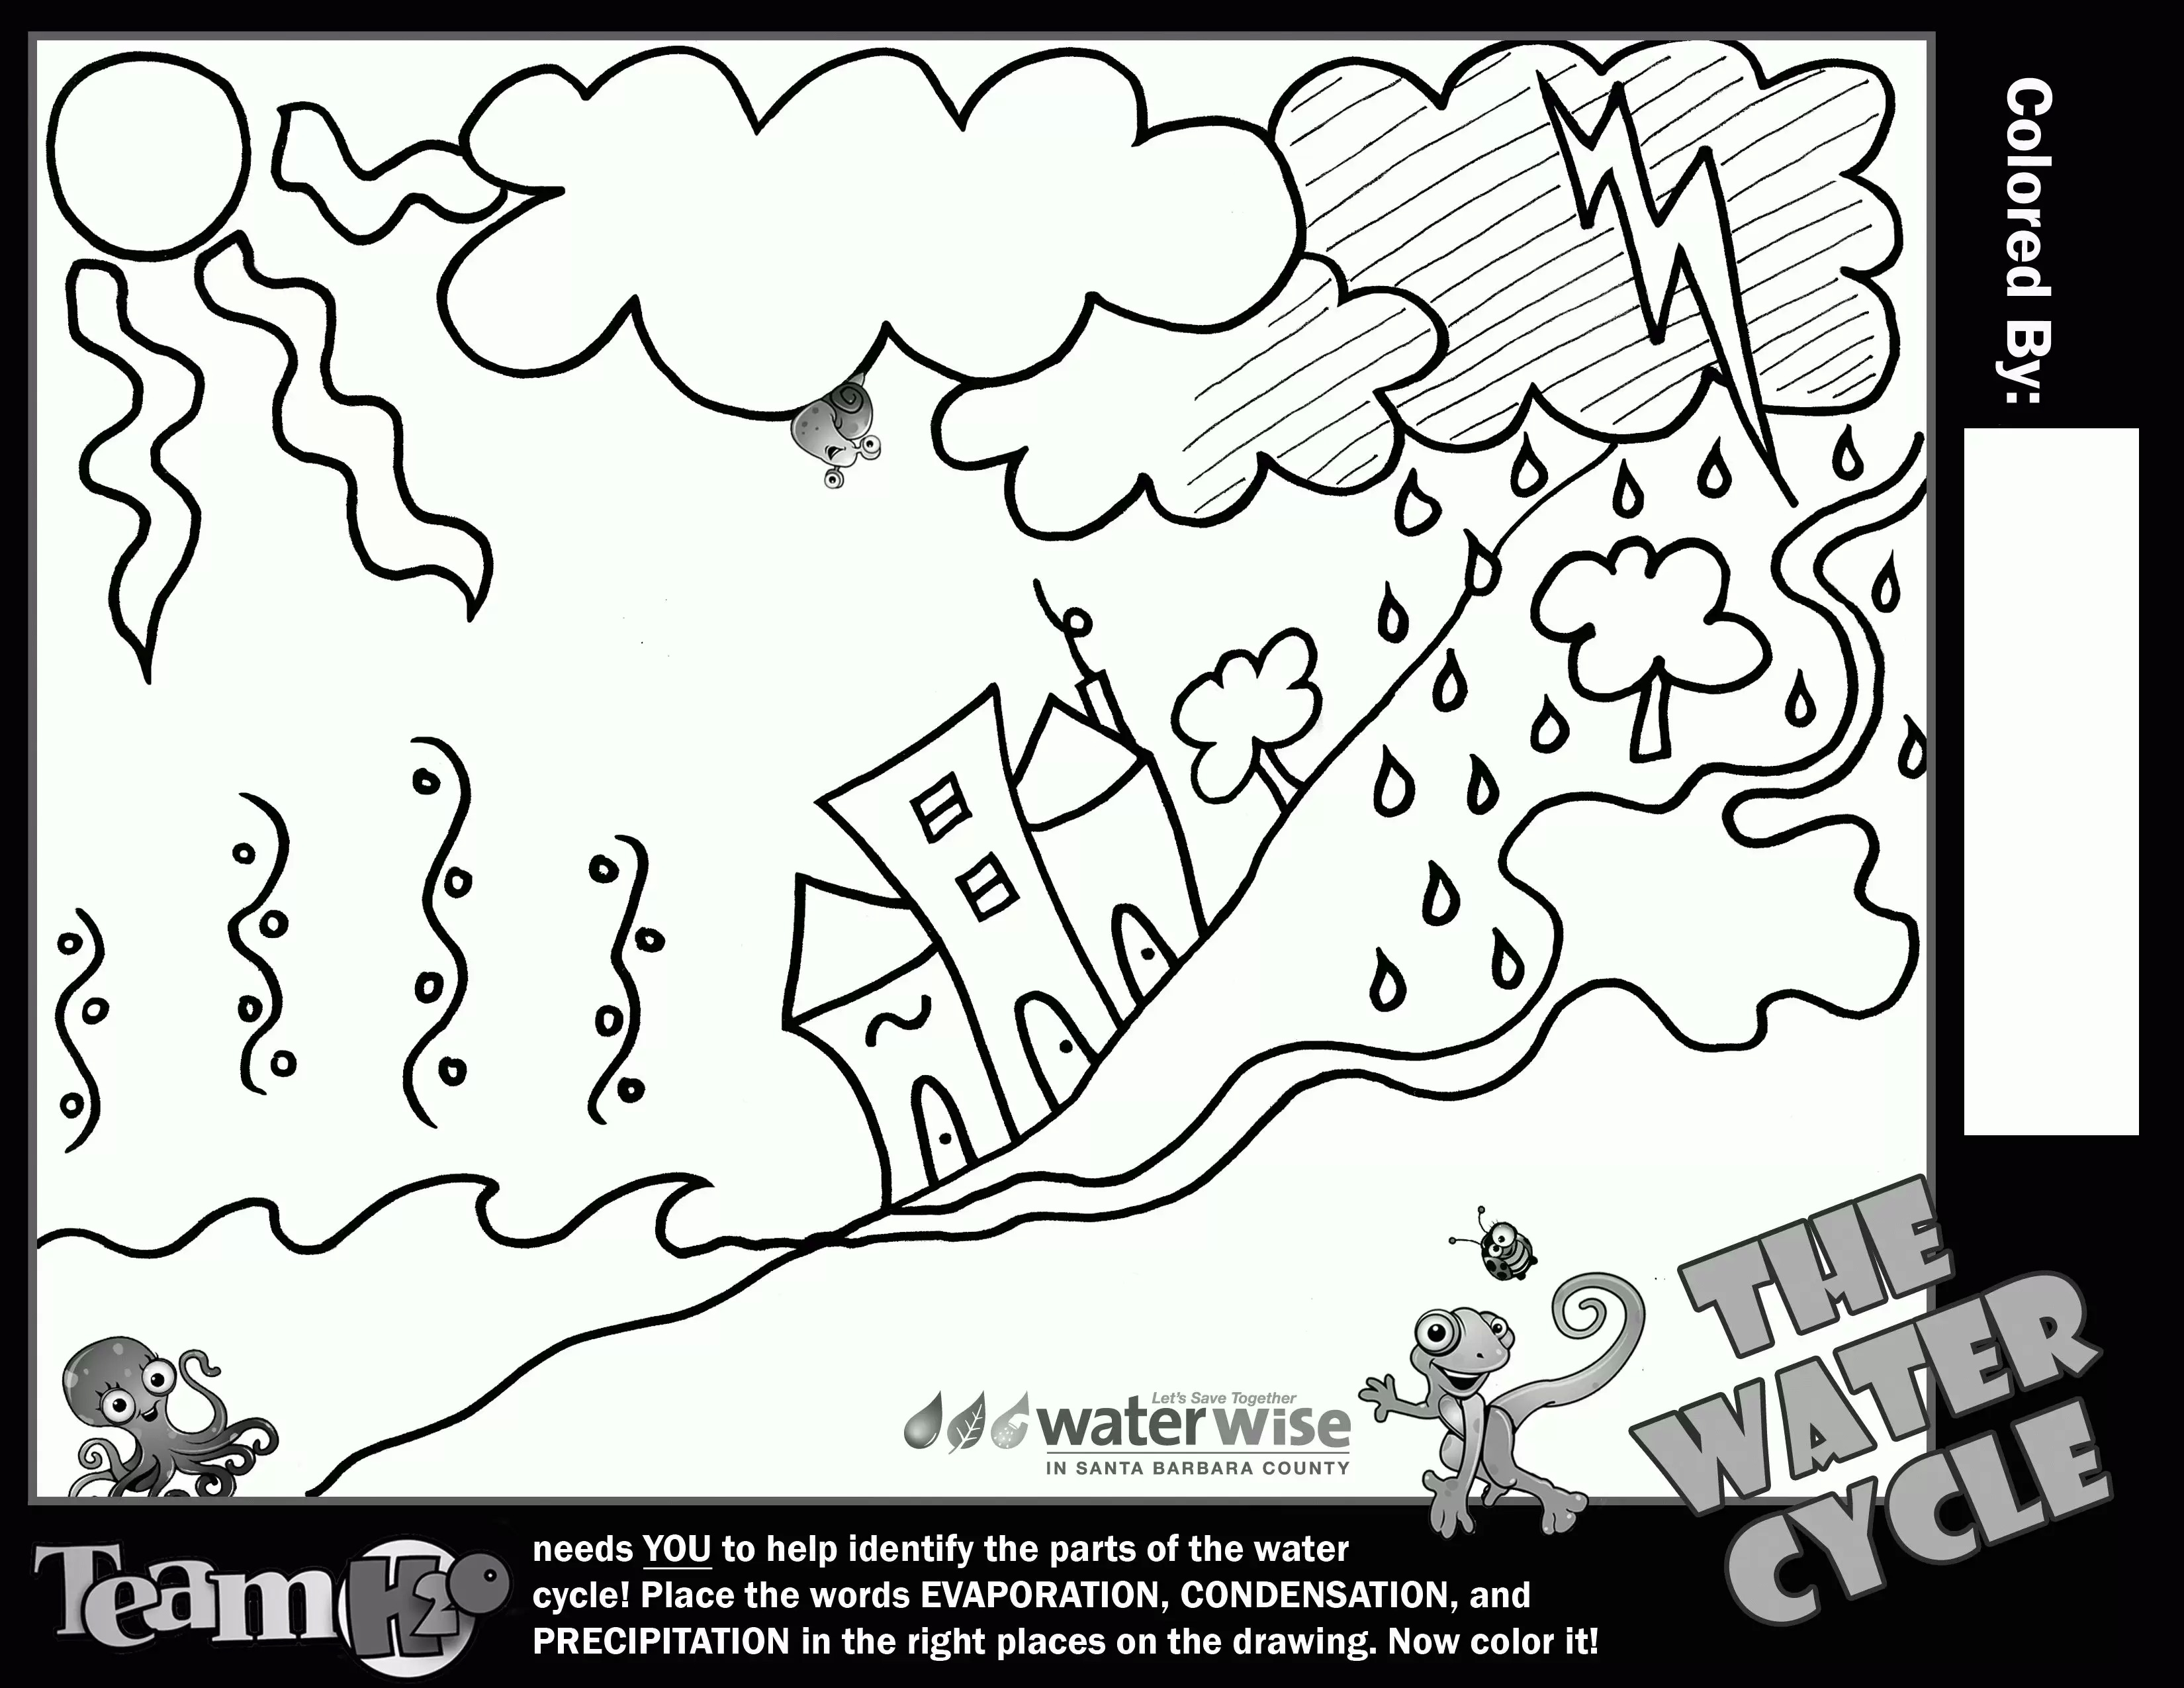 3300x2550 Water Cycle Coloring Pages Robertjhastings Net Beautiful Color